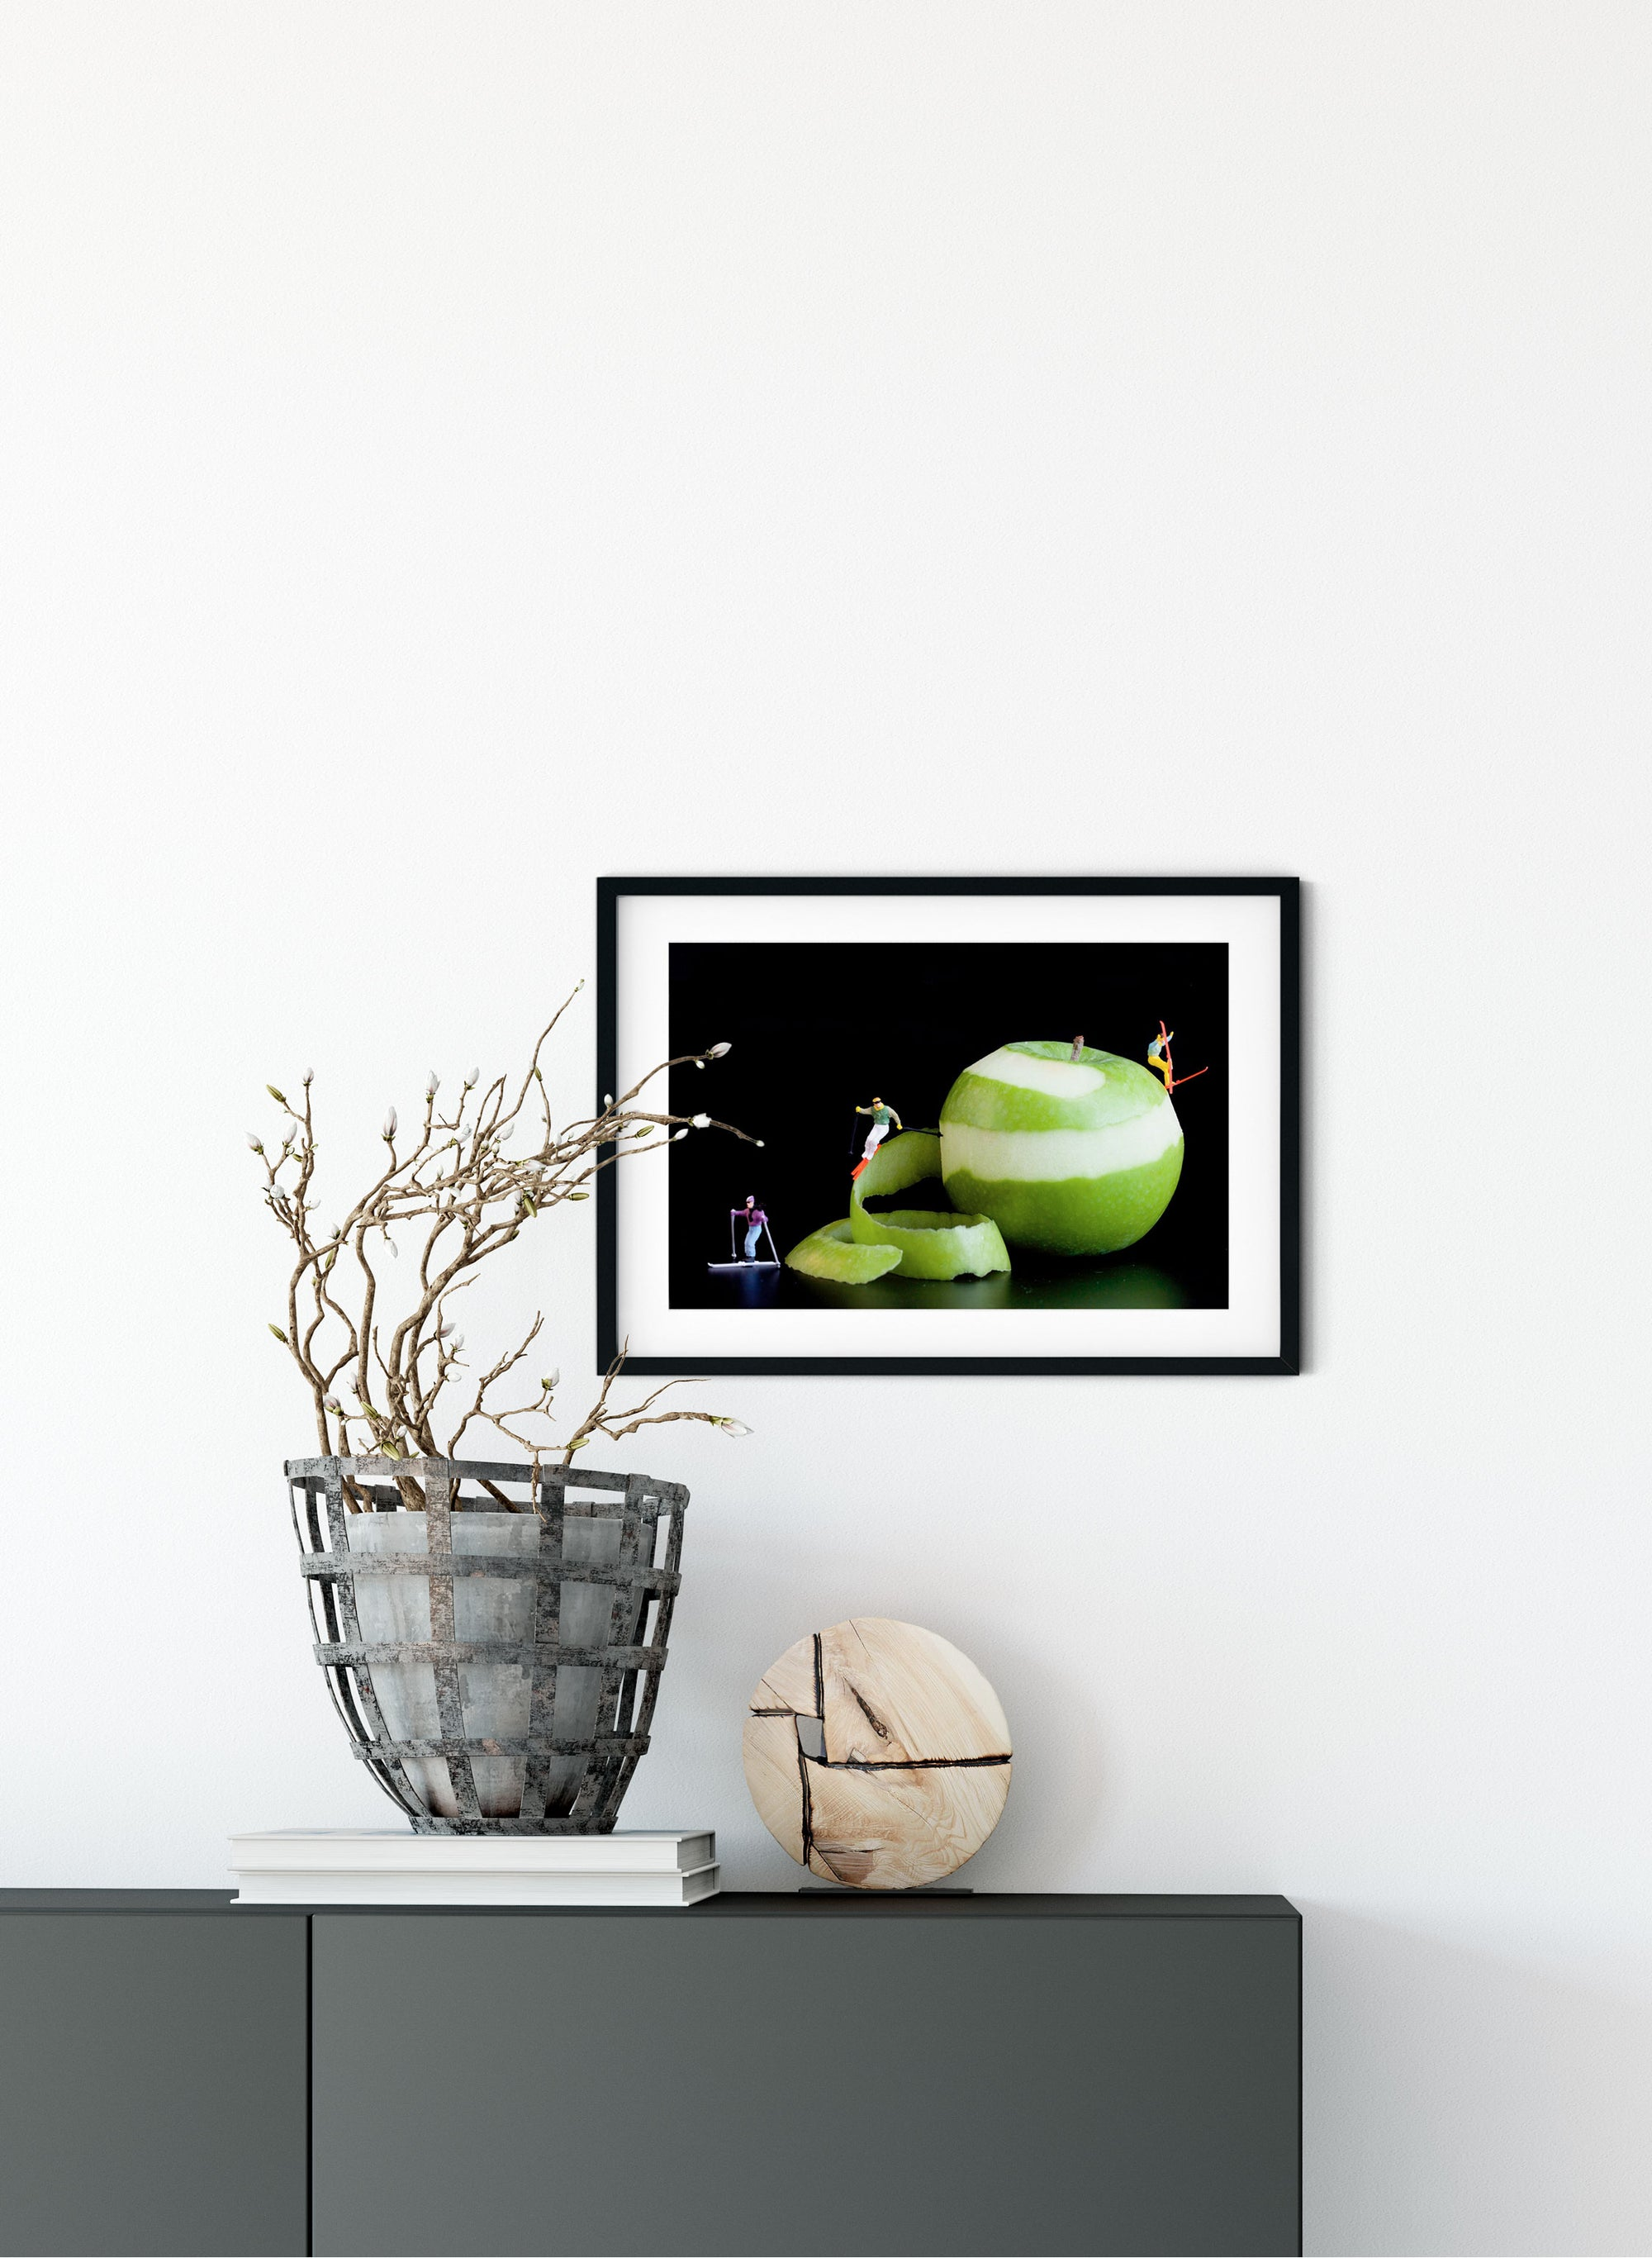 Appling - Photographic Print